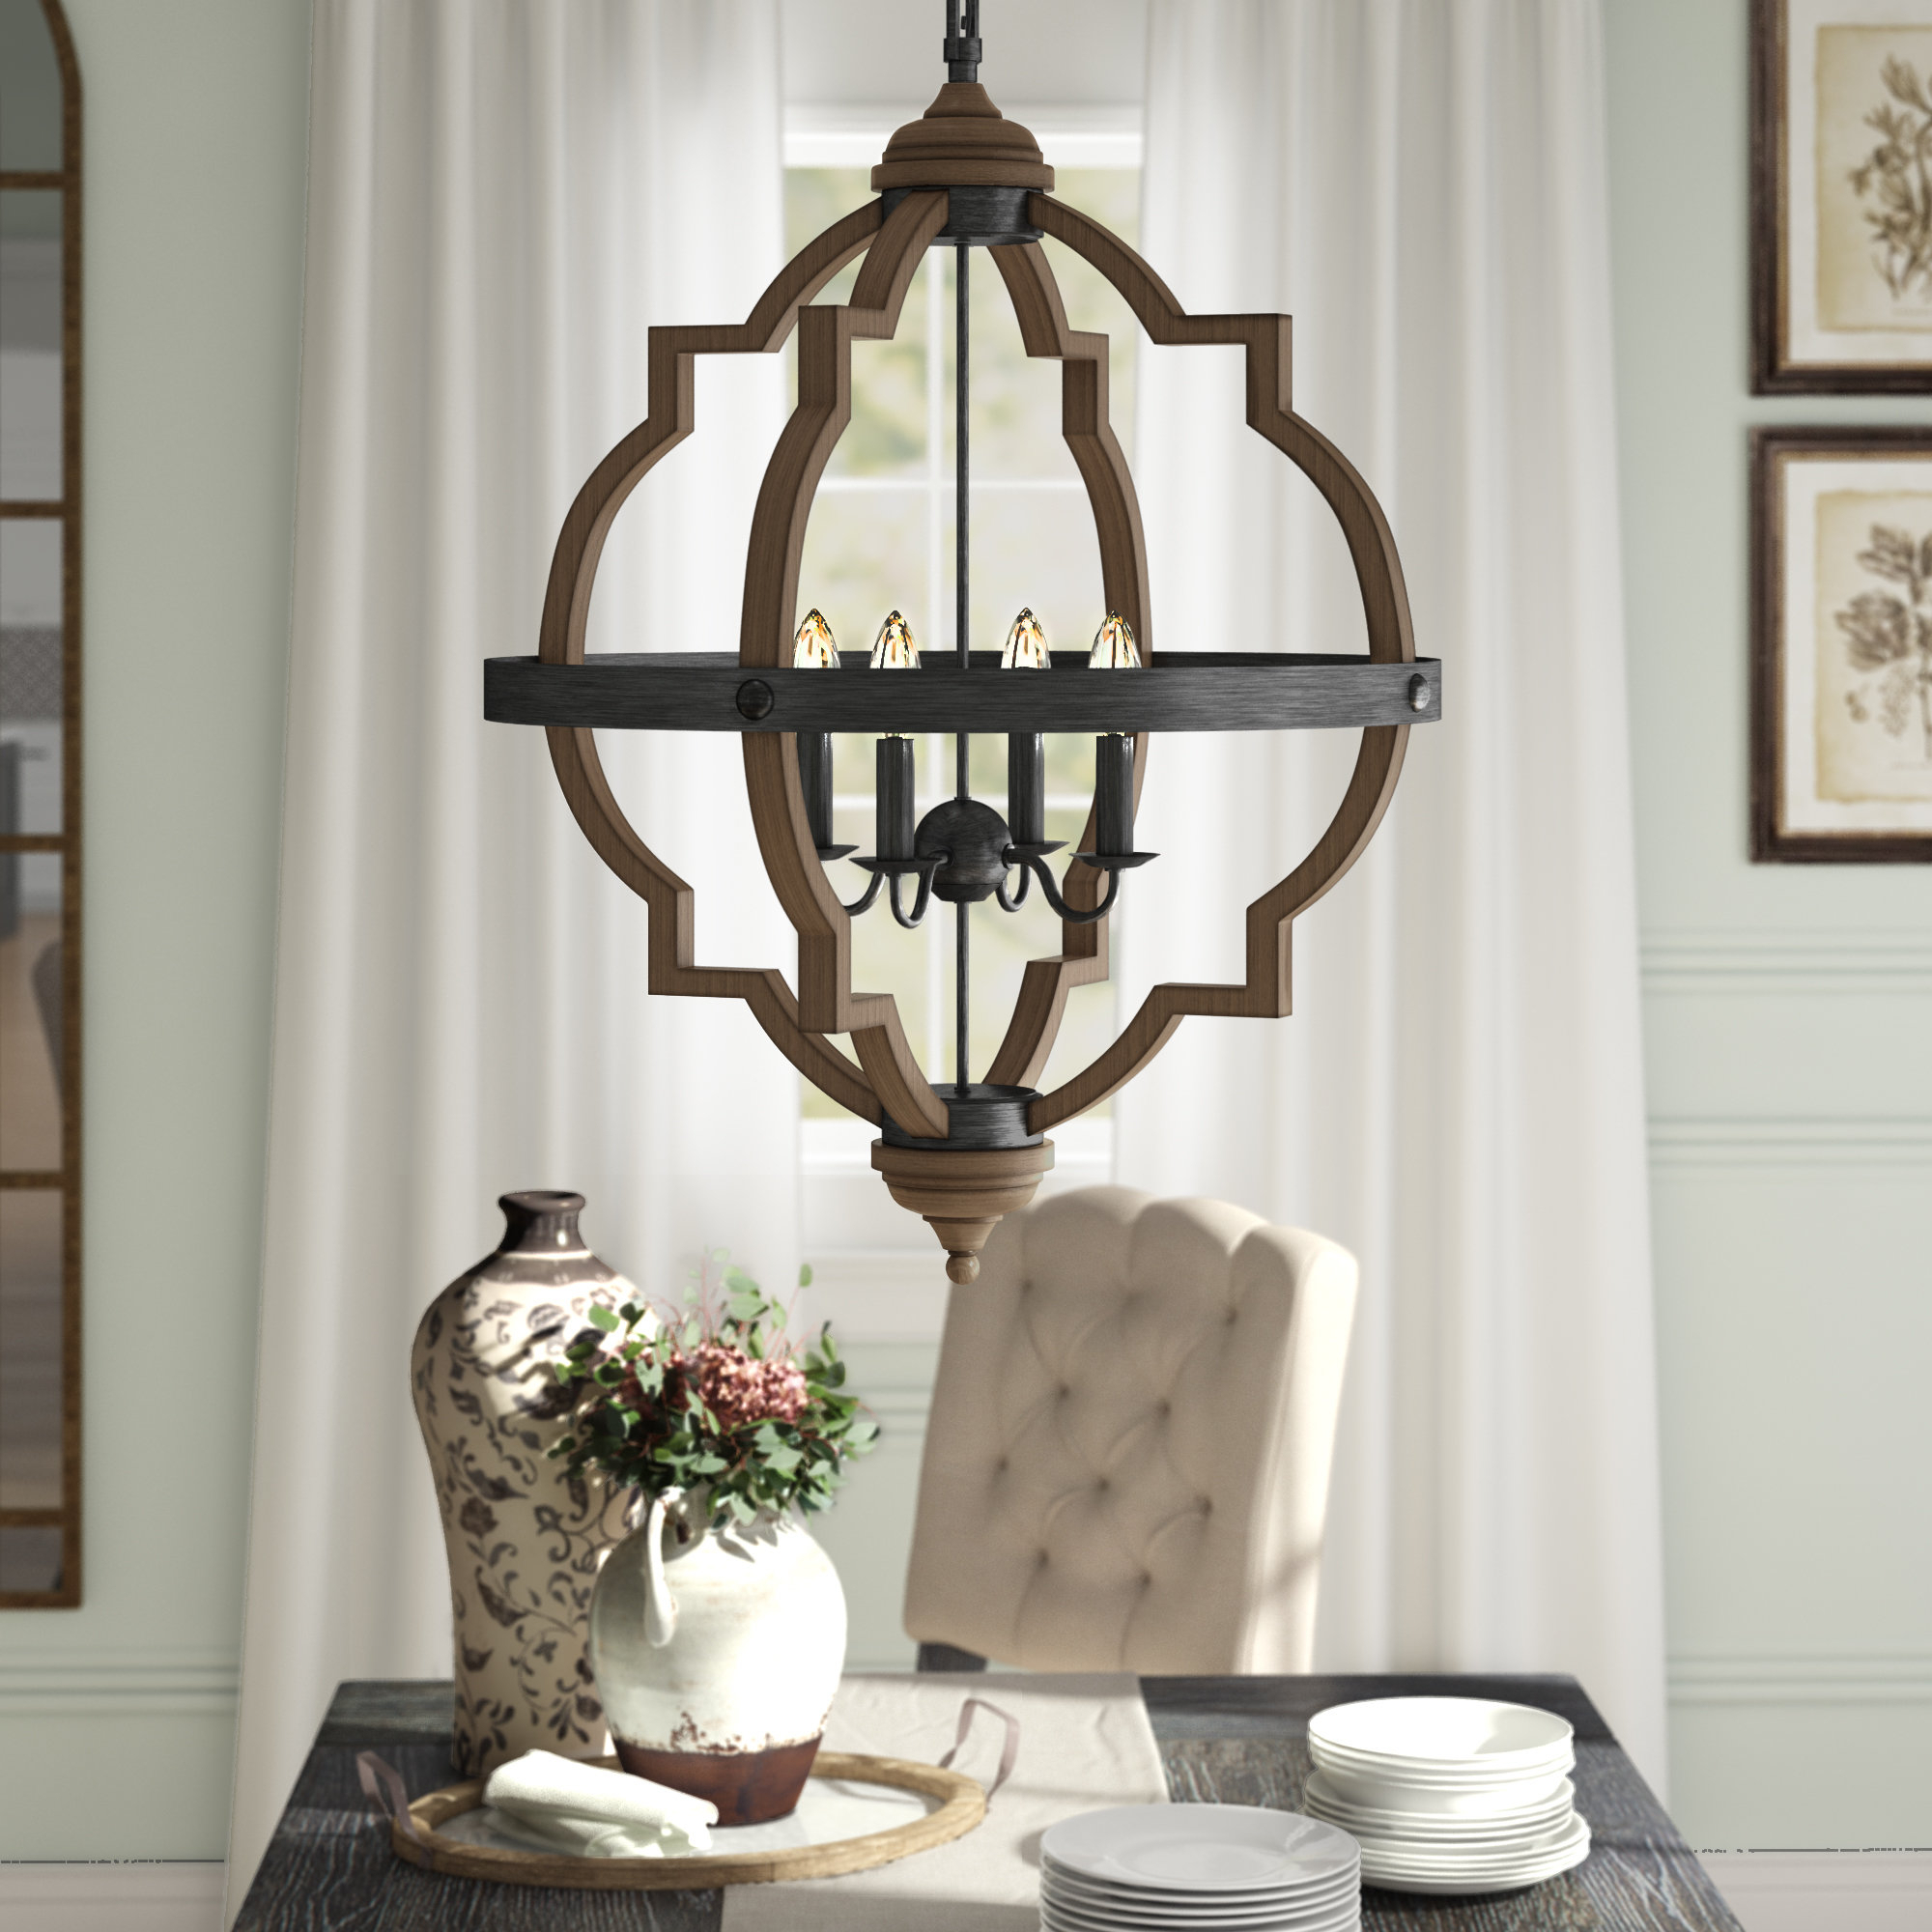 Bennington 4 Light Candle Style Chandelier Pertaining To Trendy Kaycee 4 Light Geometric Chandeliers (View 4 of 25)